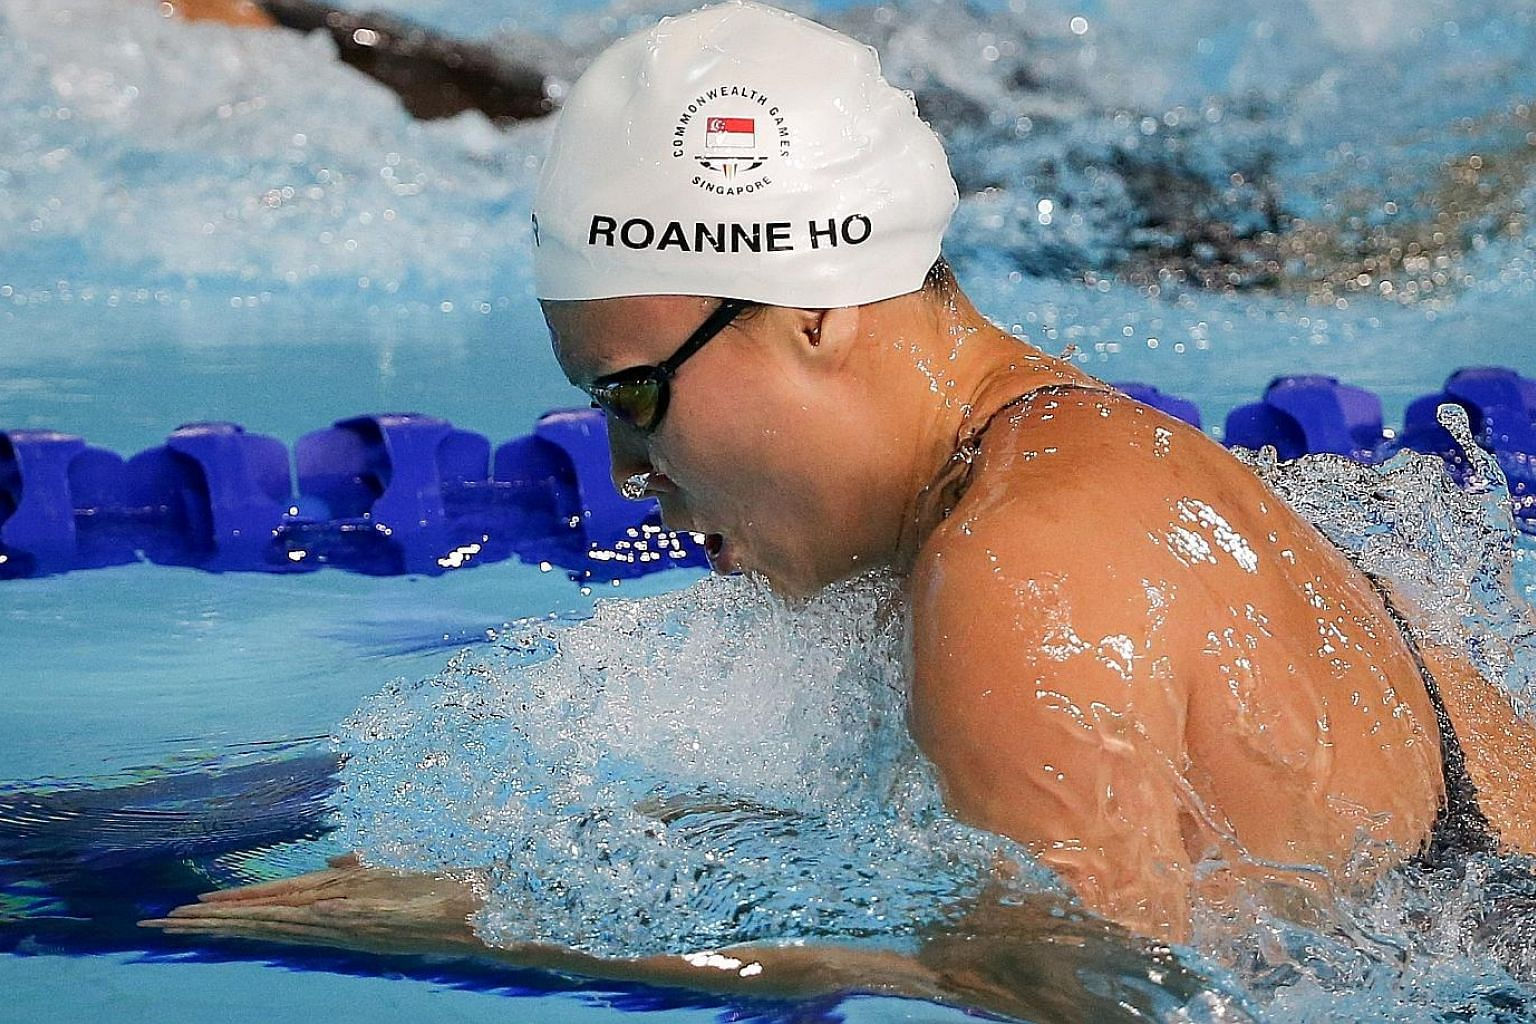 Roanne Ho in the semi-finals of the 50m breaststroke at the Optus Aquatic Centre. She was 0.02sec outside her national mark but squeezed into the final as the slowest qualifier.